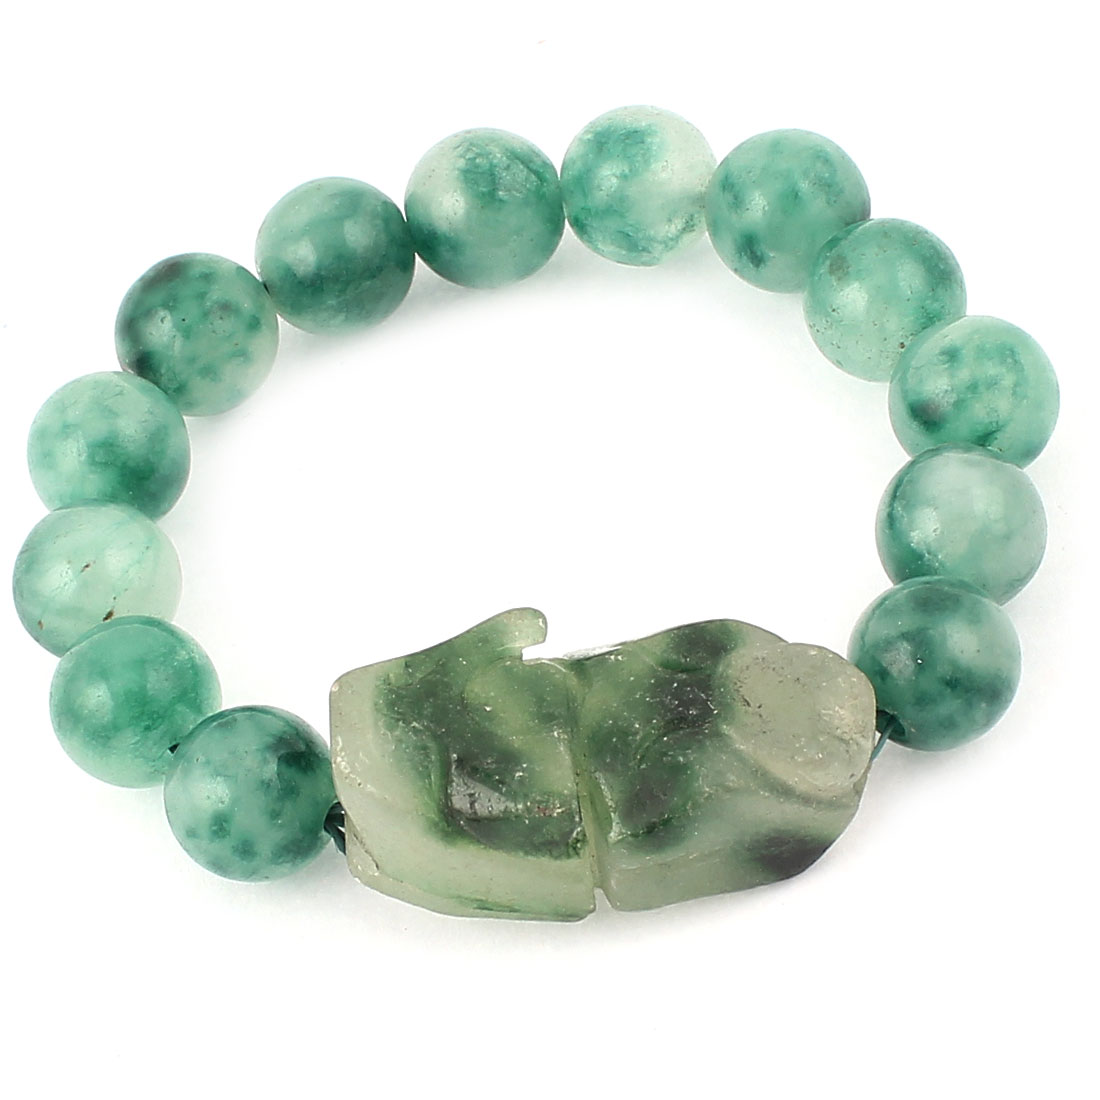 Lady Faux Jade Beads Elastic Wrist Stretchy Bangle Bracelet Dark Green